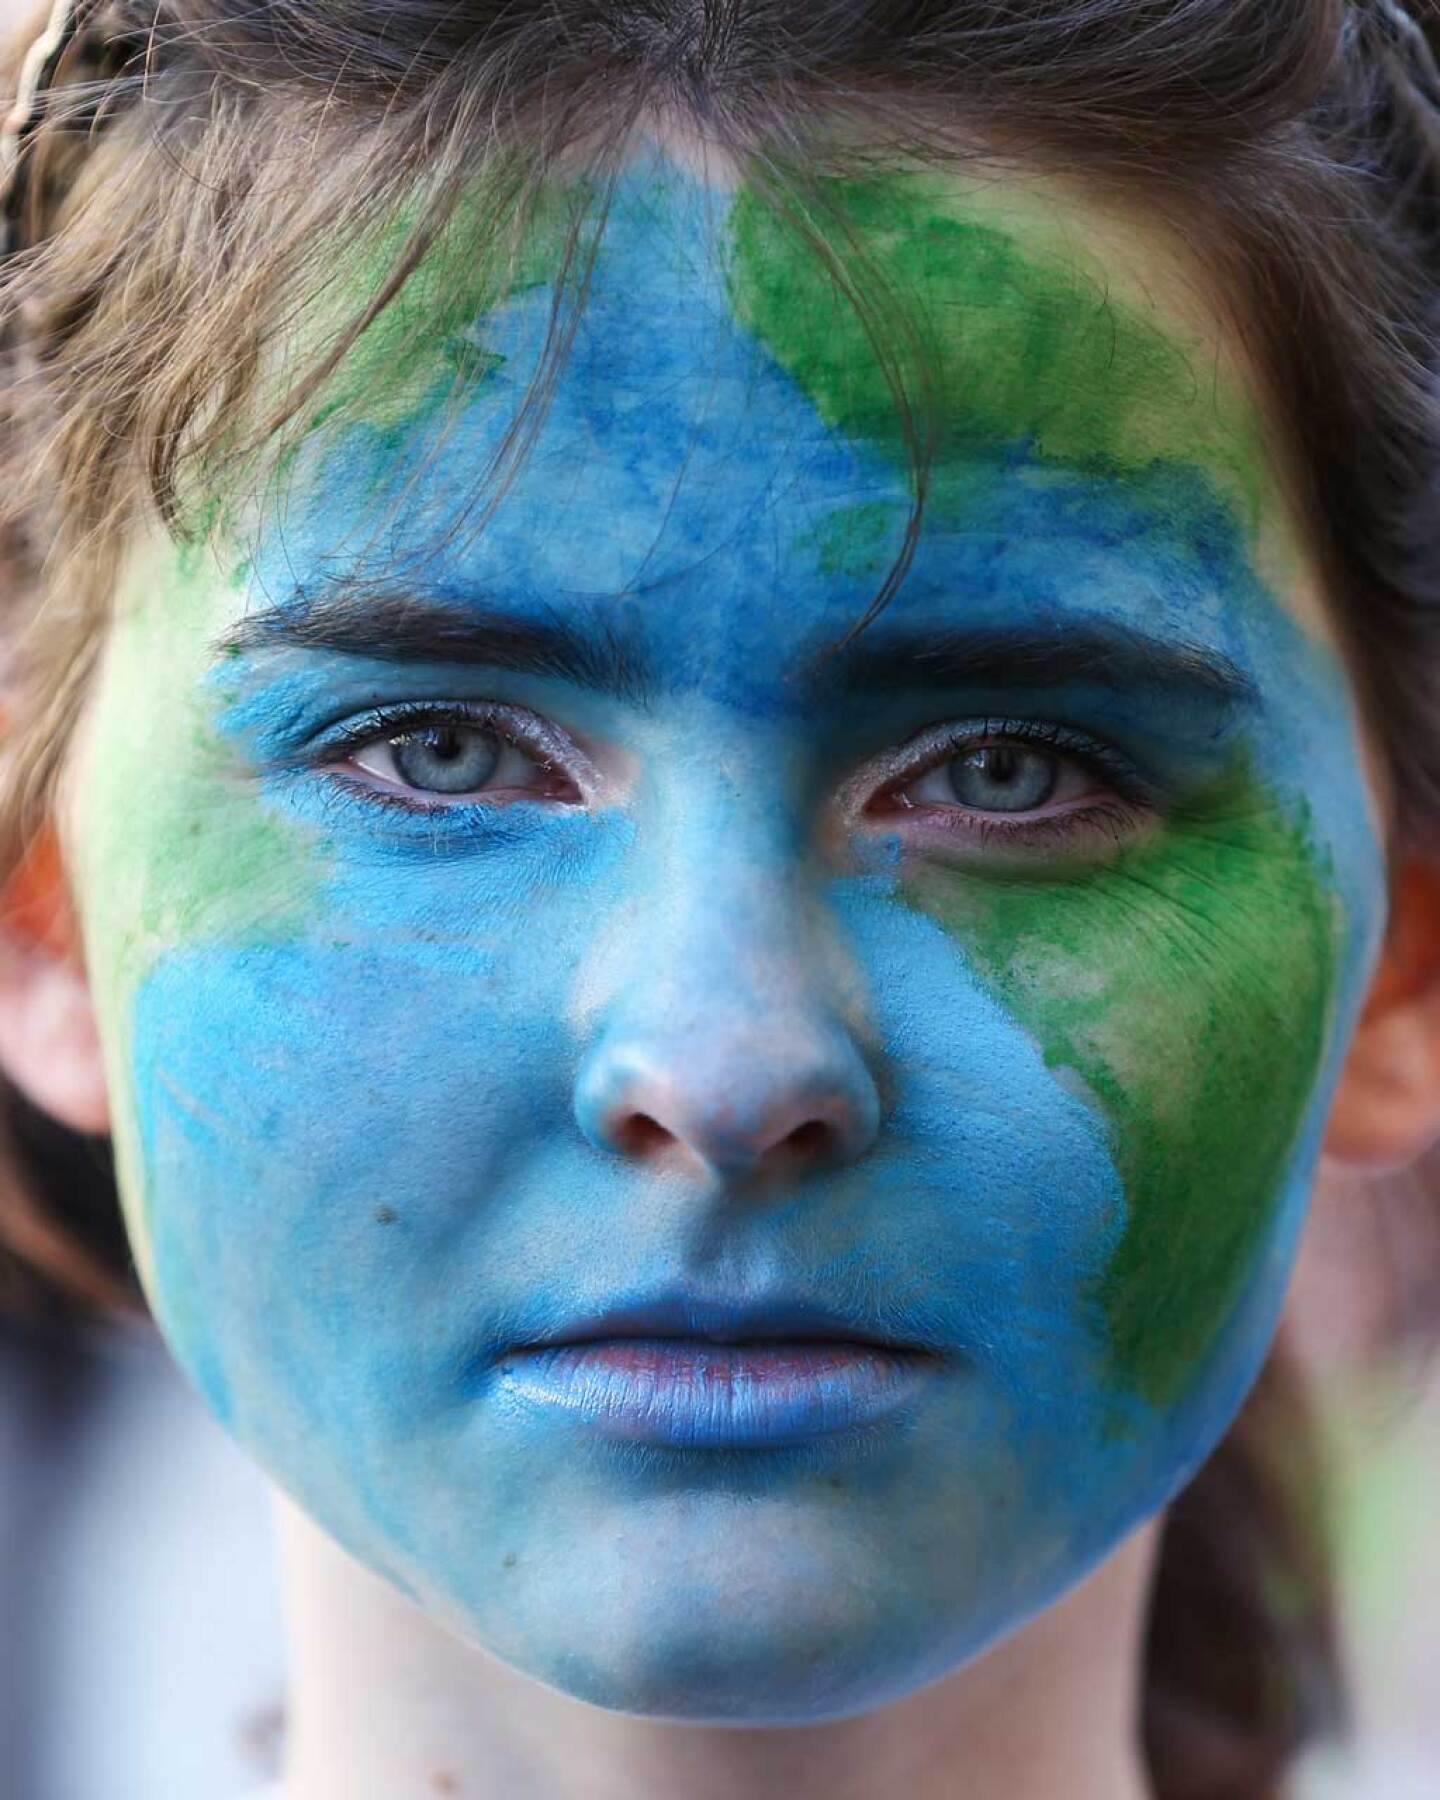 A protestor in New Zealand looks on during a strike to raise climate change awareness in September 2019. | Hagen Hopkins/Getty Images